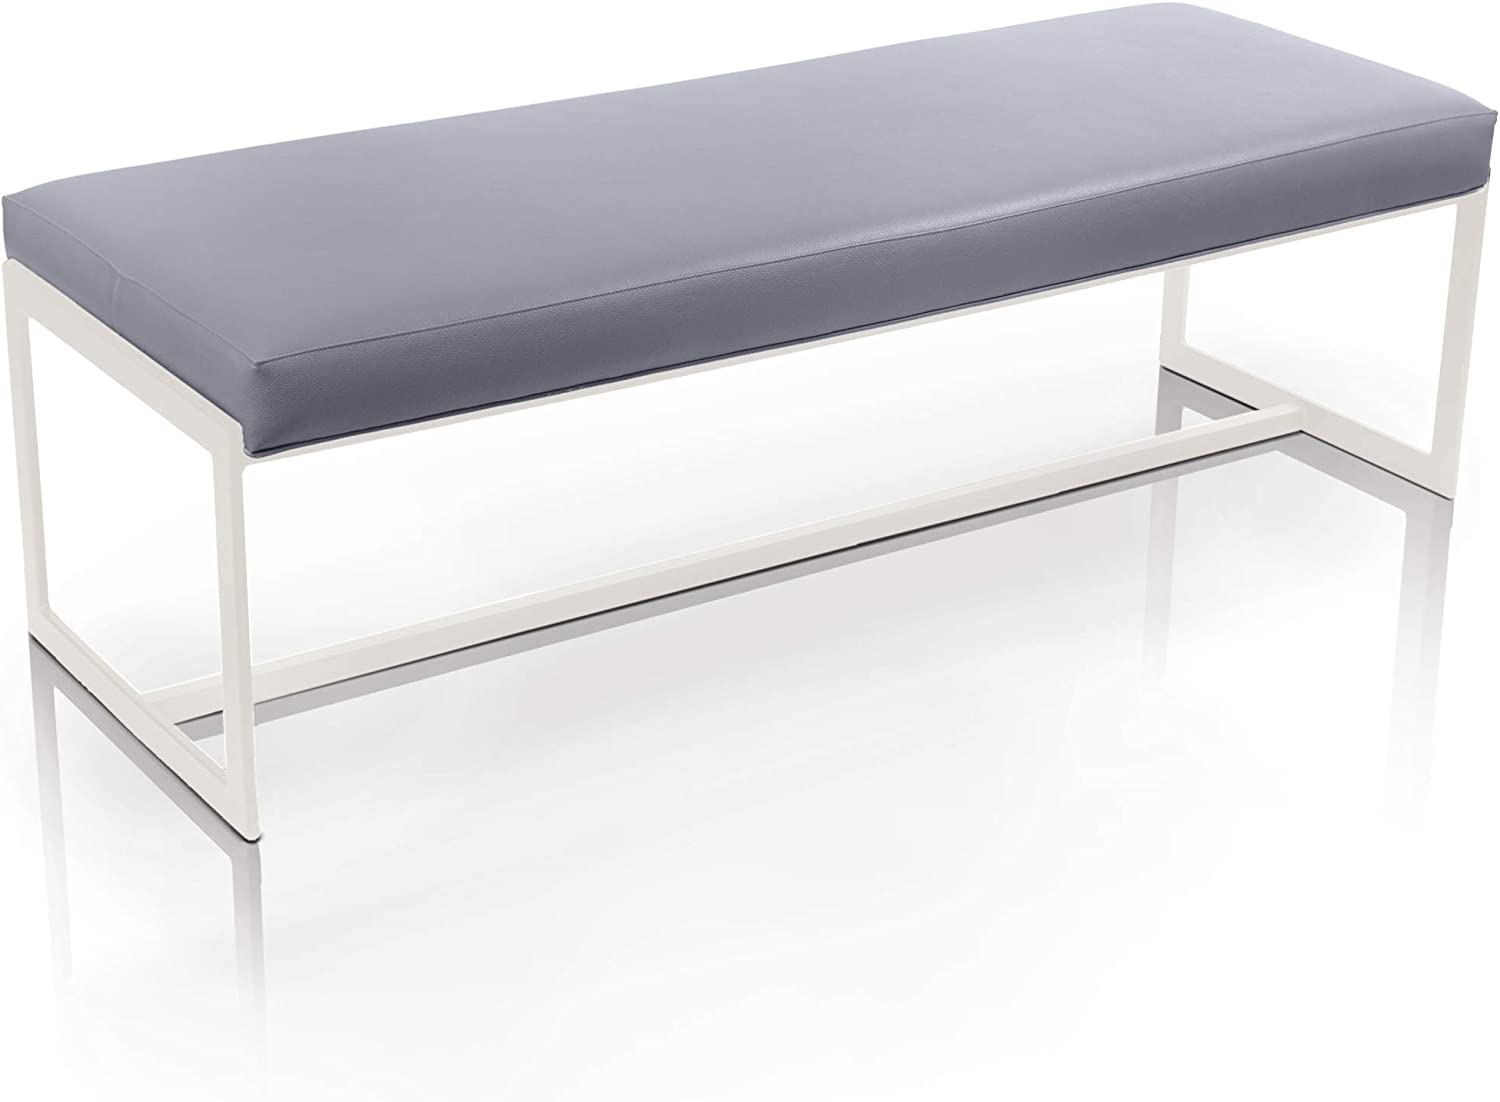 Elegant Design Finished Polished Stainless Steel Frame Faith Bench Fabric Polyurethane with Pedestal Legs Modern Flair Seat Furniture for Dining Room and More! Strange DNA Faith Bench